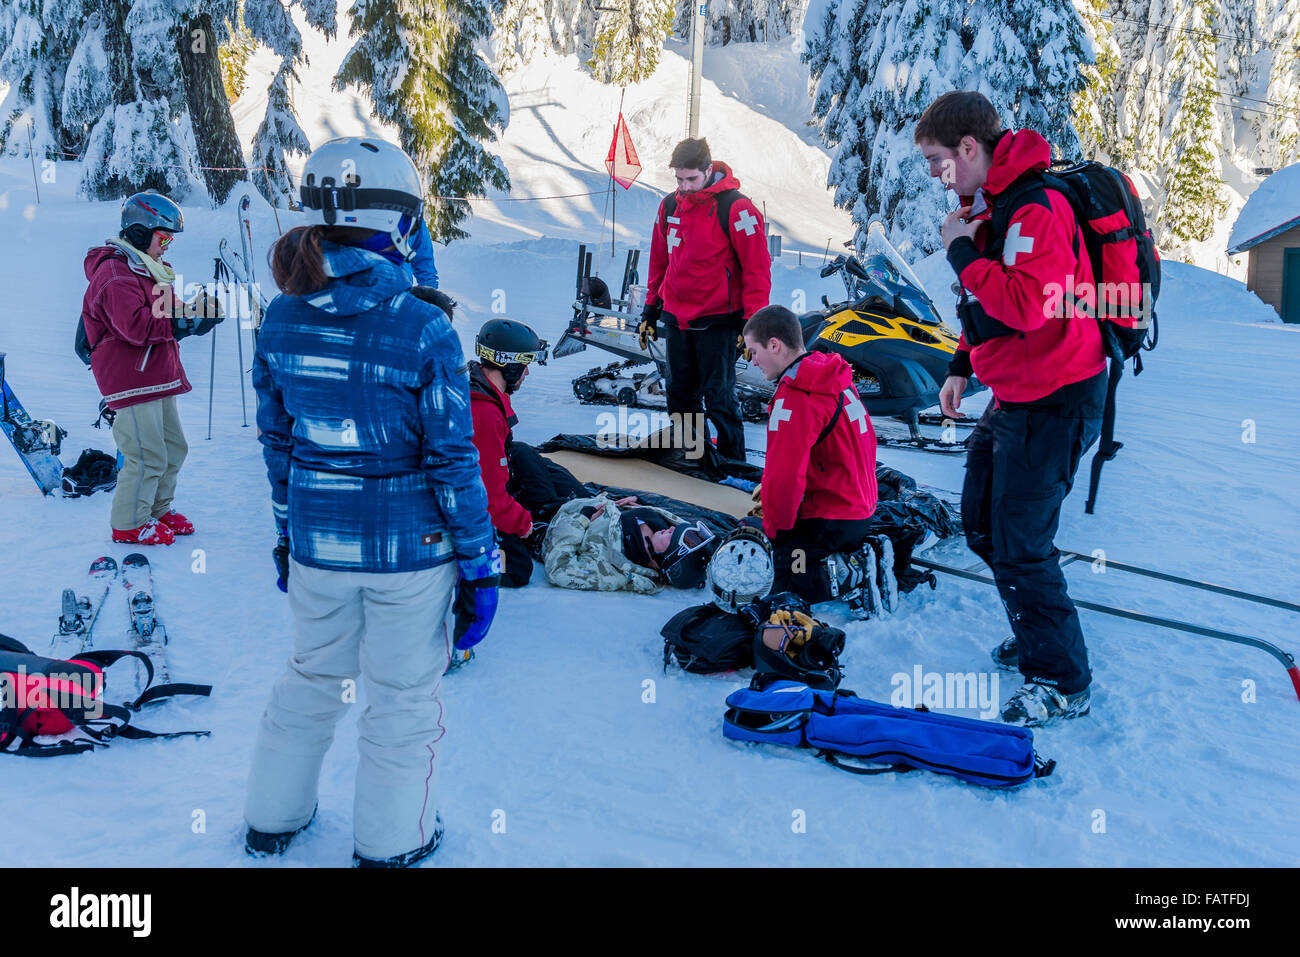 First aid attendants help injured skier. snowboarder, Mount Seymour Provincial Park, North Vancouver, British Columbia, - Stock Image